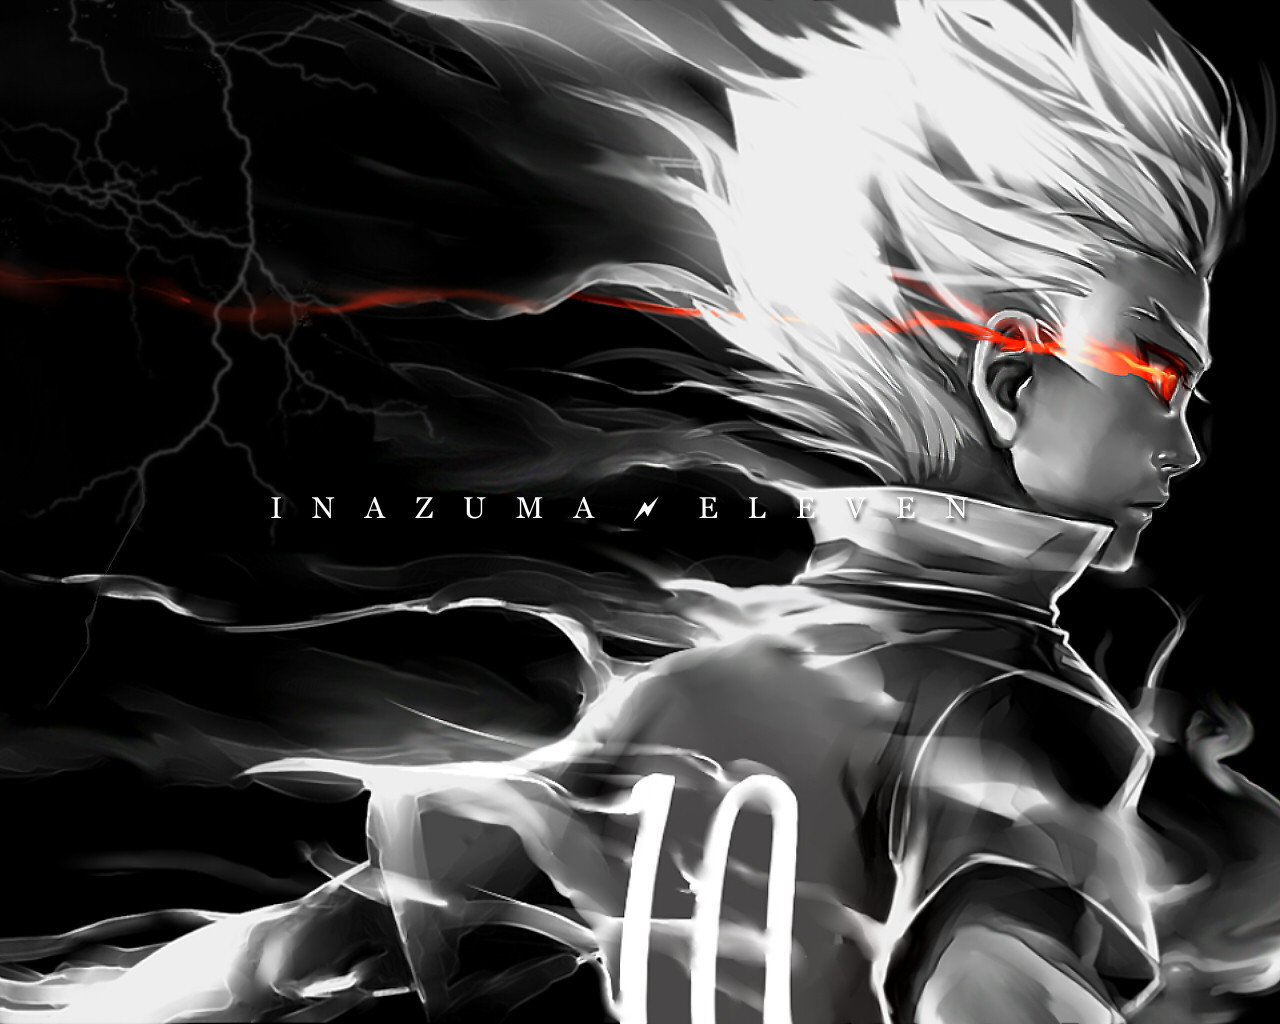 httpmgoujizzc0m_in which pic axel/gouenji look 更多 cool